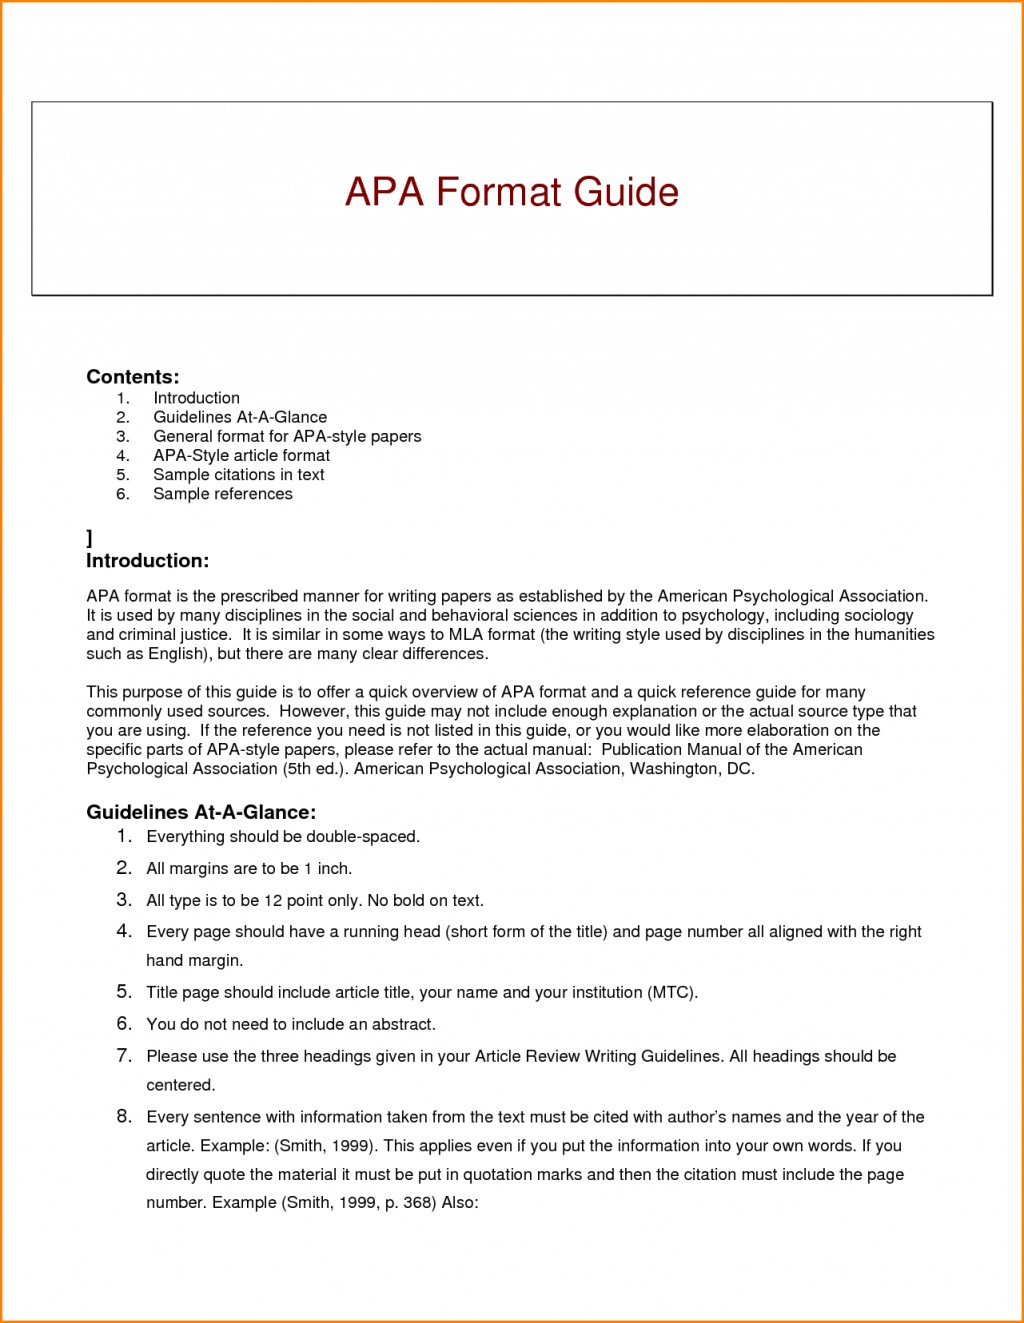 007 Research Paper Citing Papers Apa Breathtaking Sources In Paragraph Citation Large